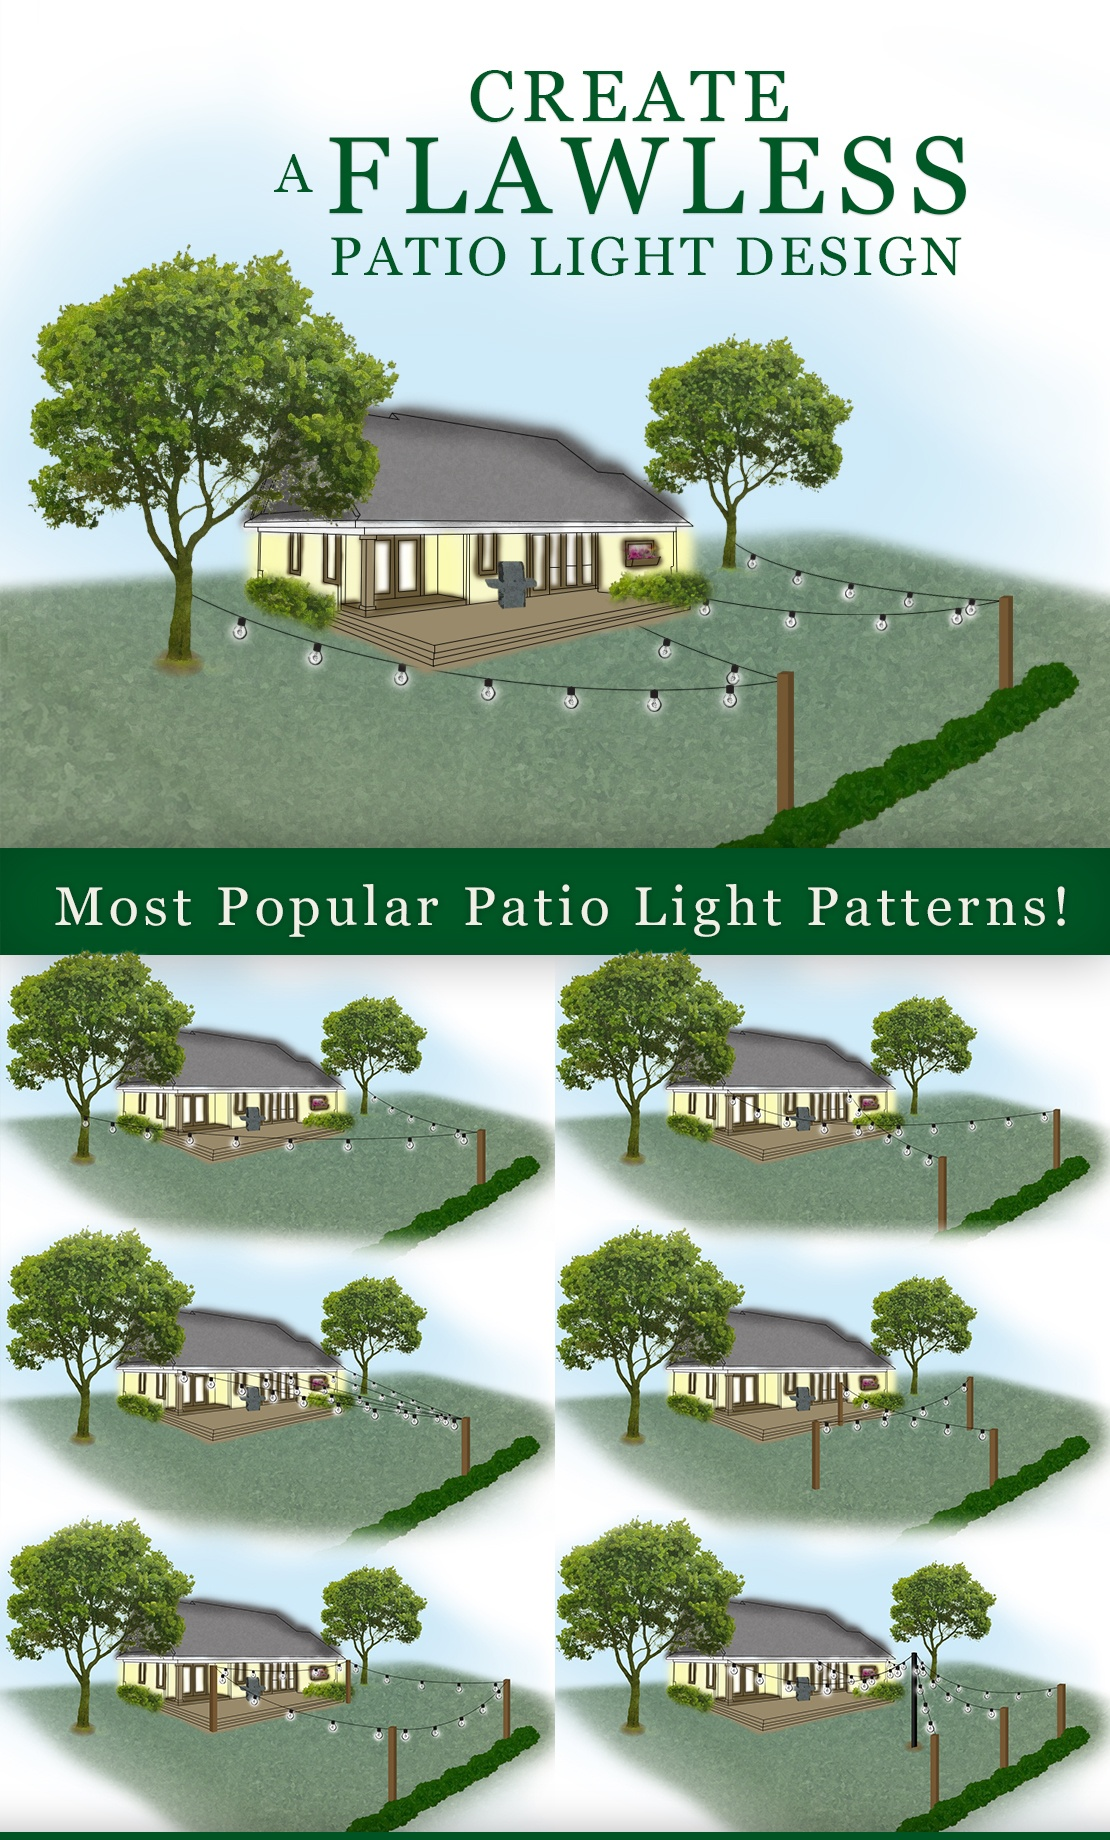 How to hang patio lights and patio light pattern ideas.